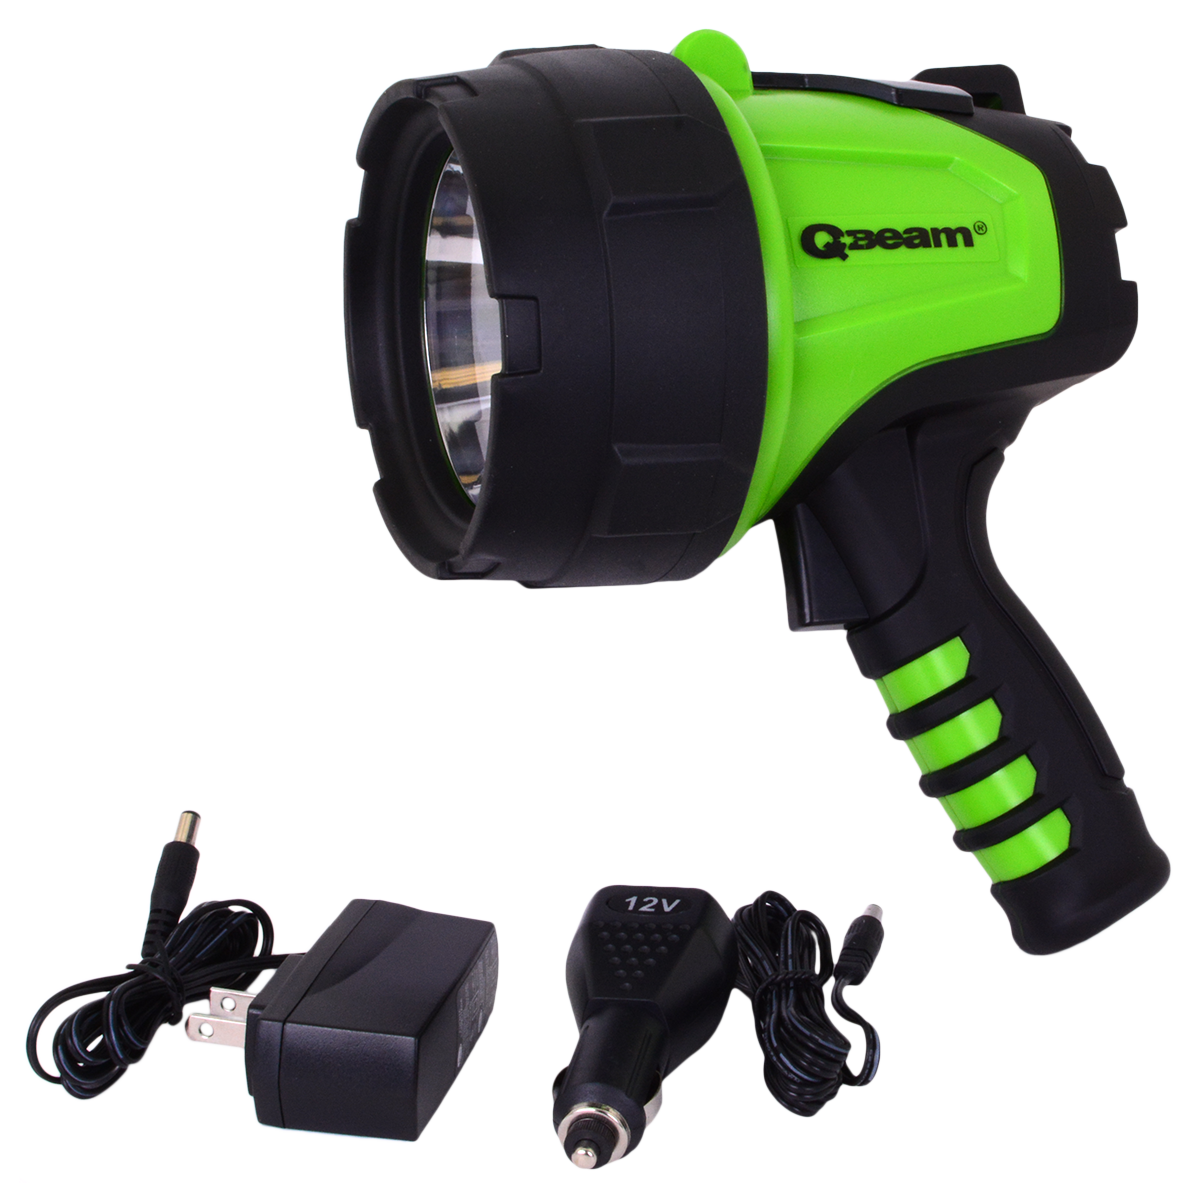 Q-Beam Supernova Plus Performance 563 Rechargeable Spotlight